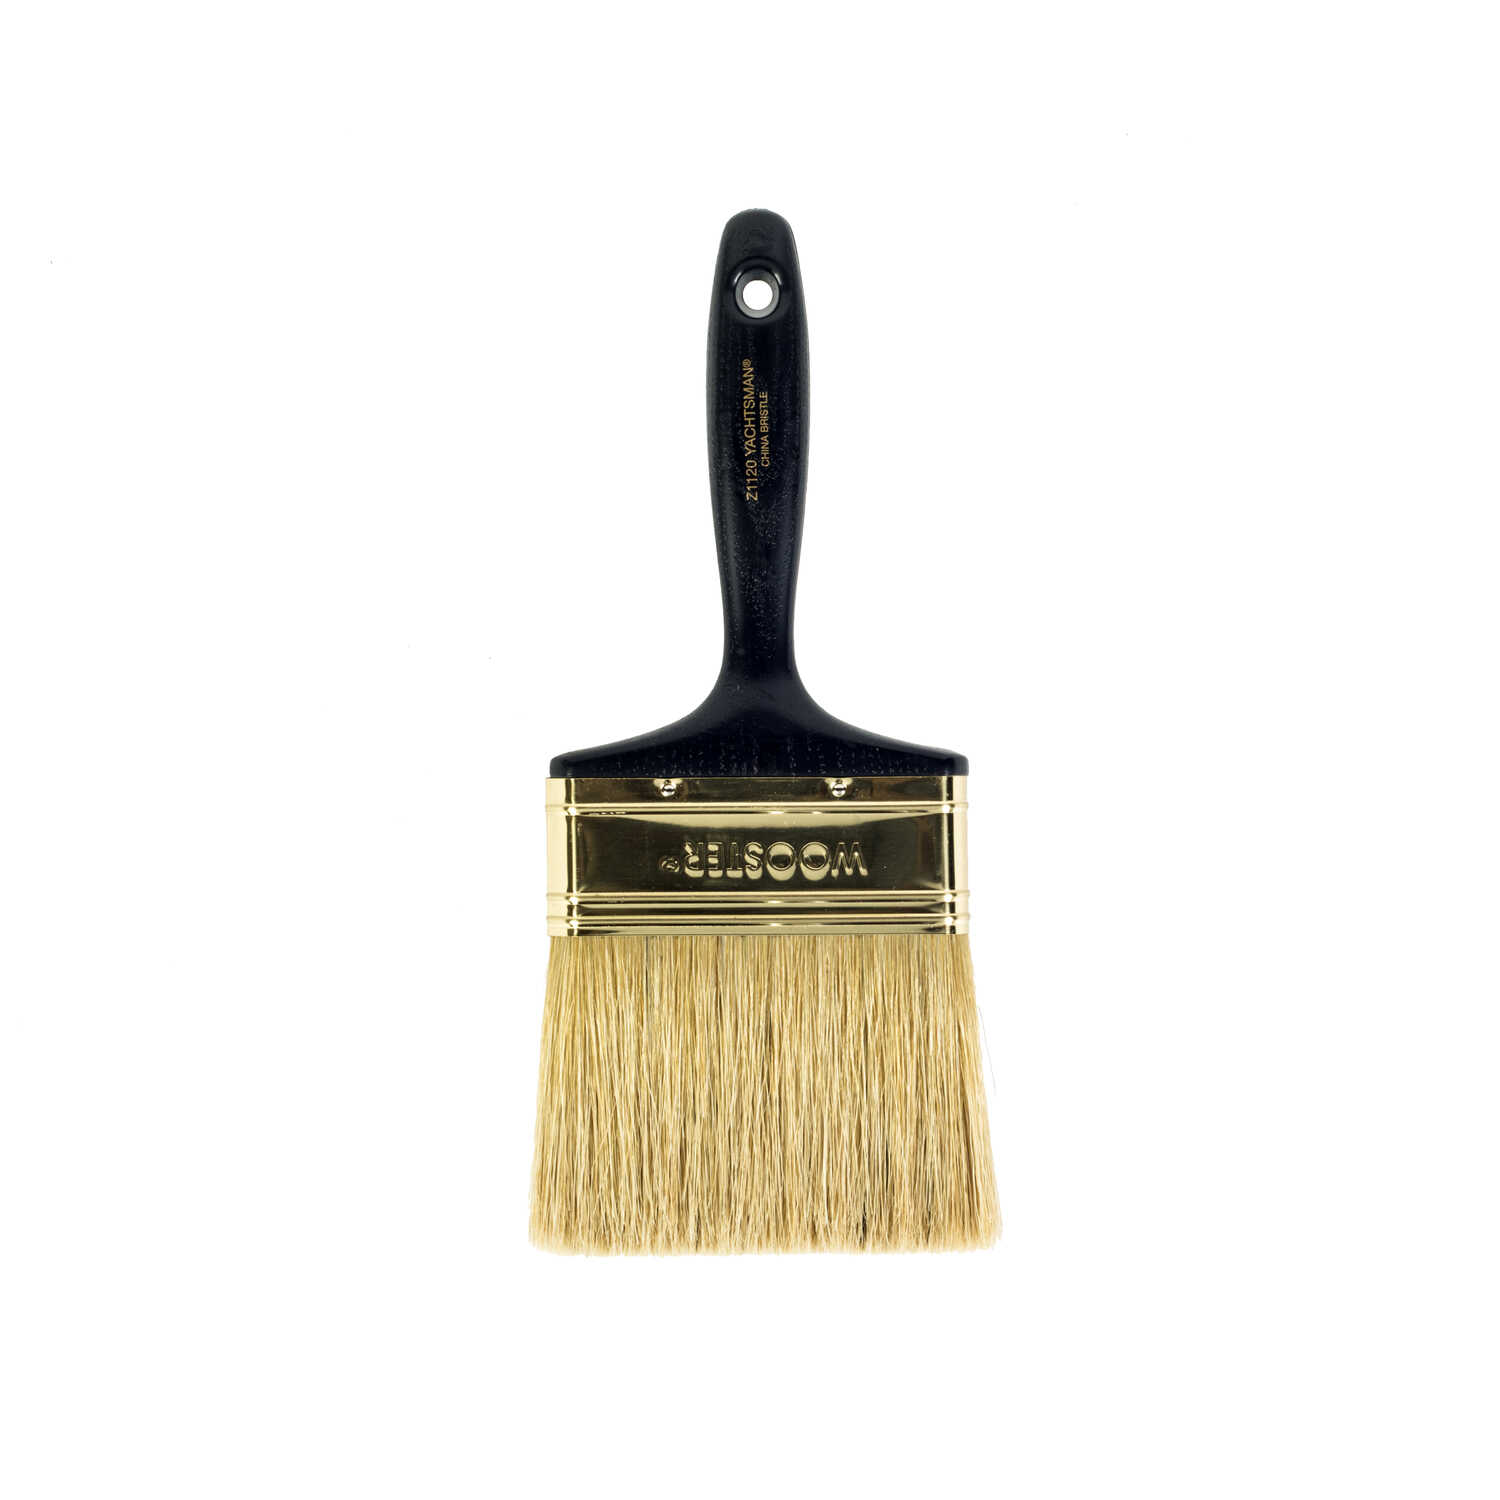 Wooster  Yachtsman  4 in. W Chiseled  Paint Brush